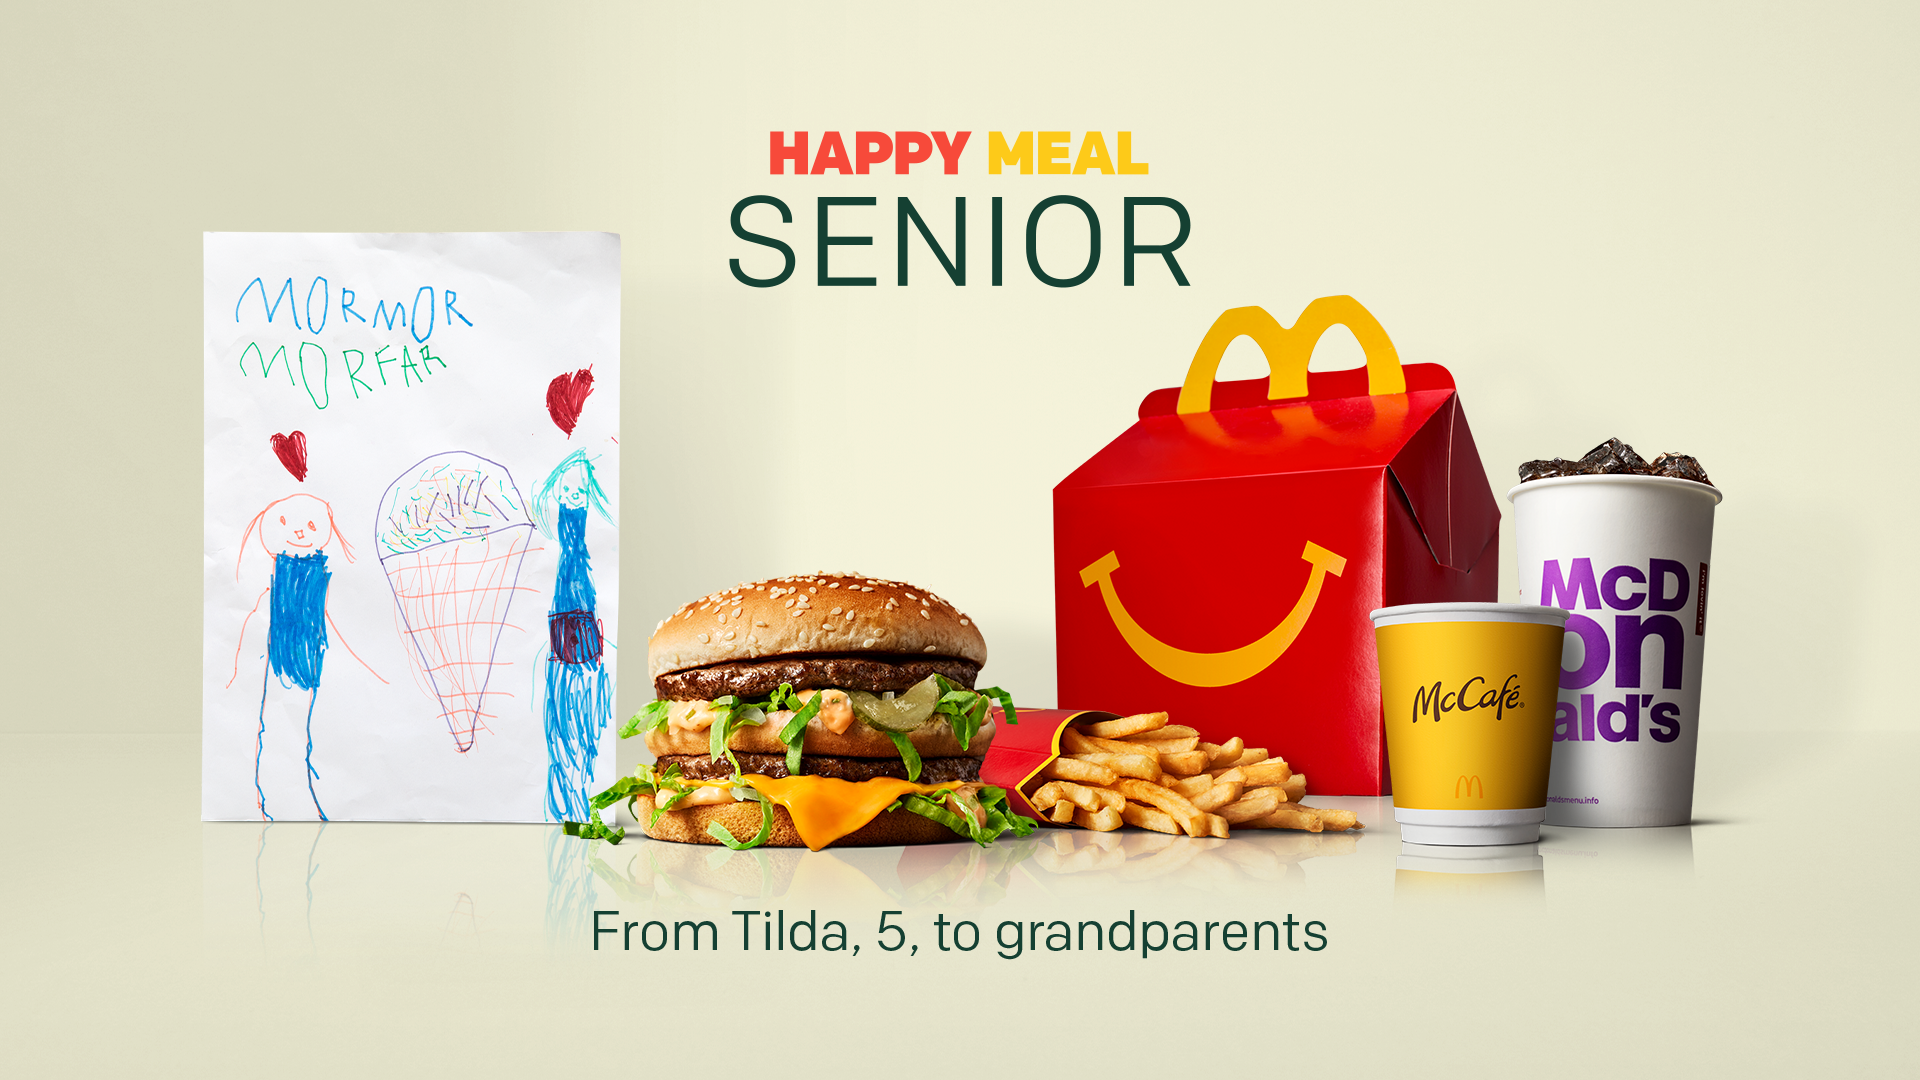 McDonald's Happy Meal Senior